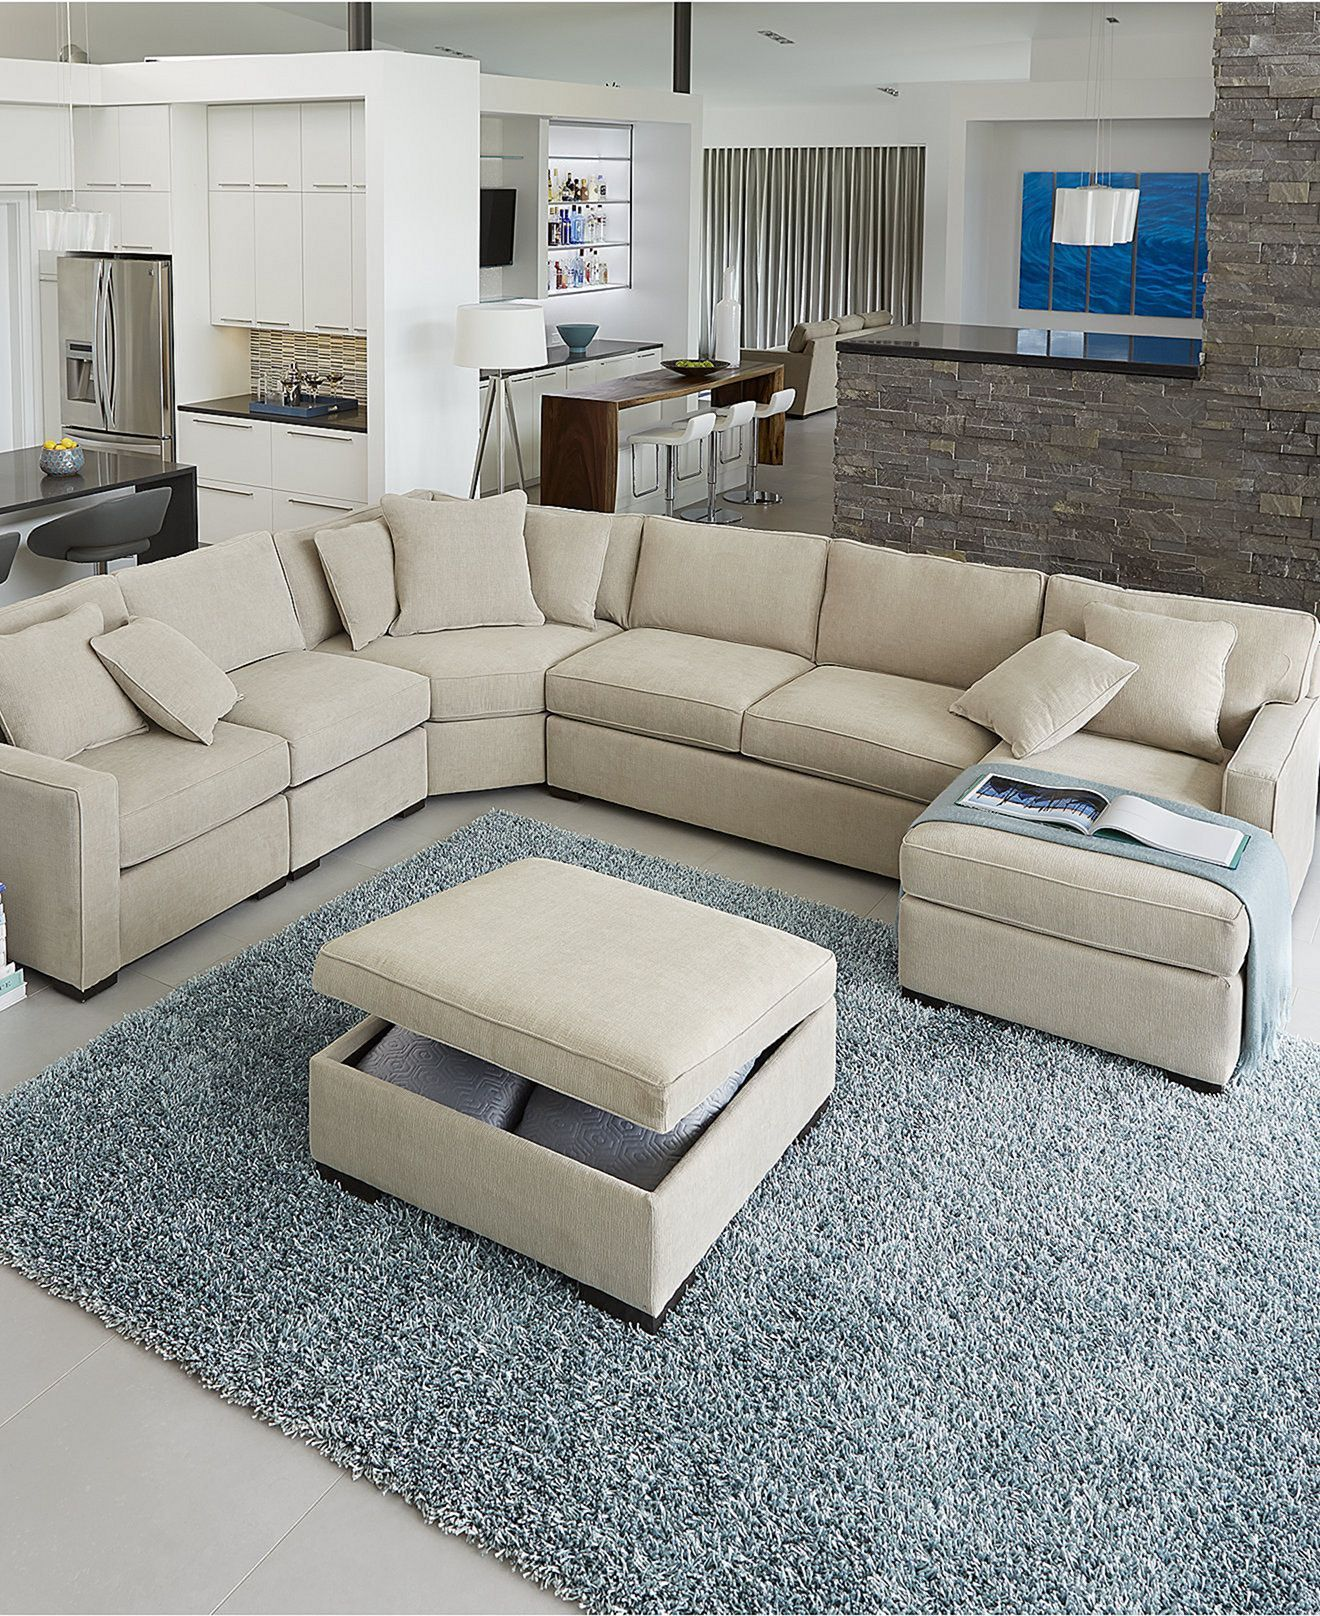 12 Perfect Corner Sofa Ideas That You Can Apply In The Living